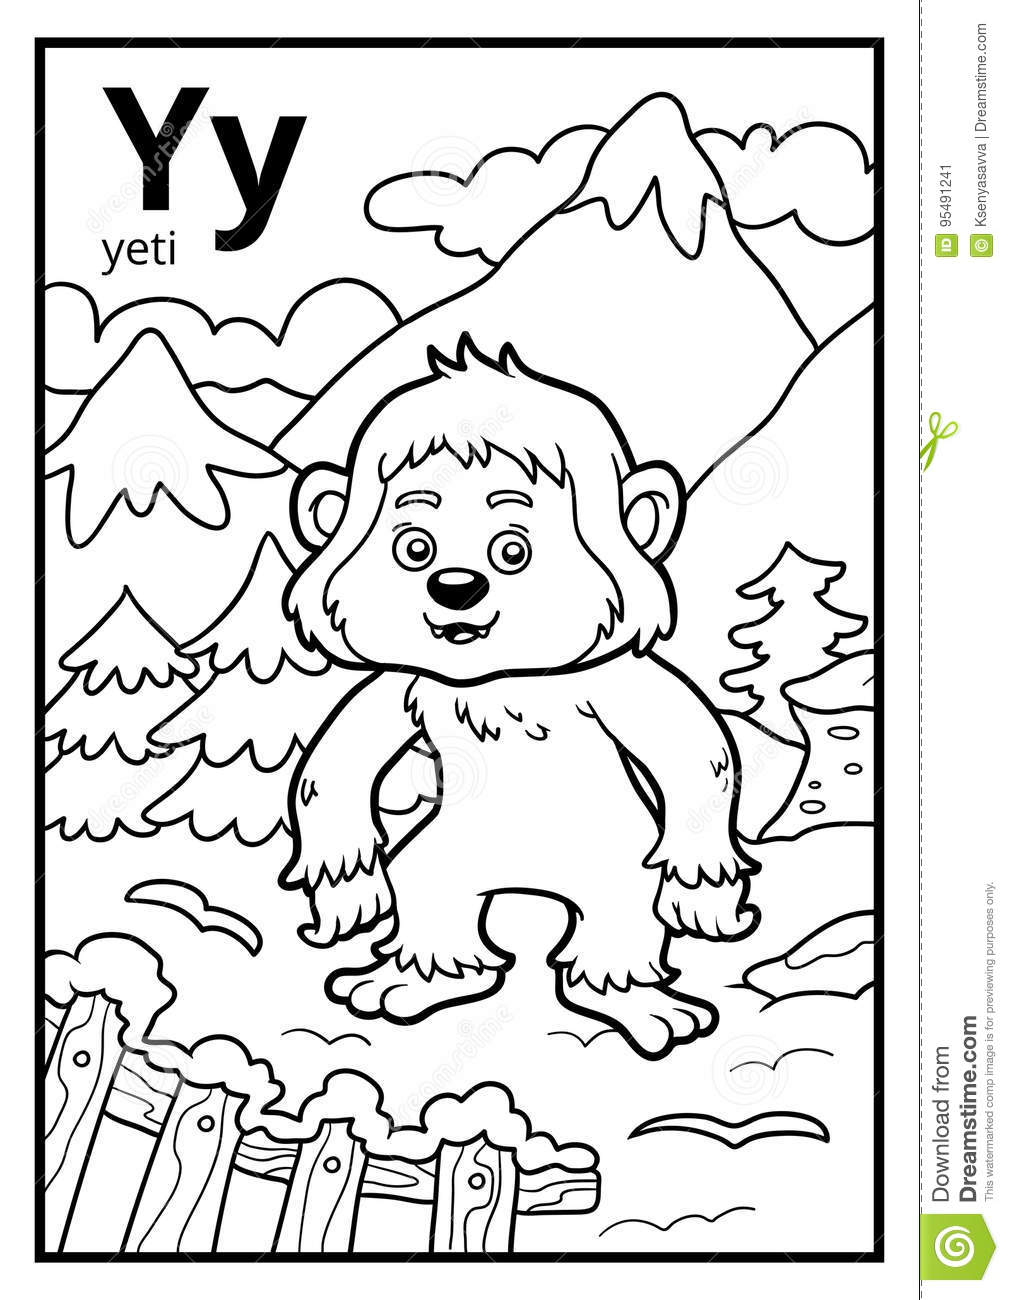 Coloring Book Colorless Alphabet Letter Y Yeti